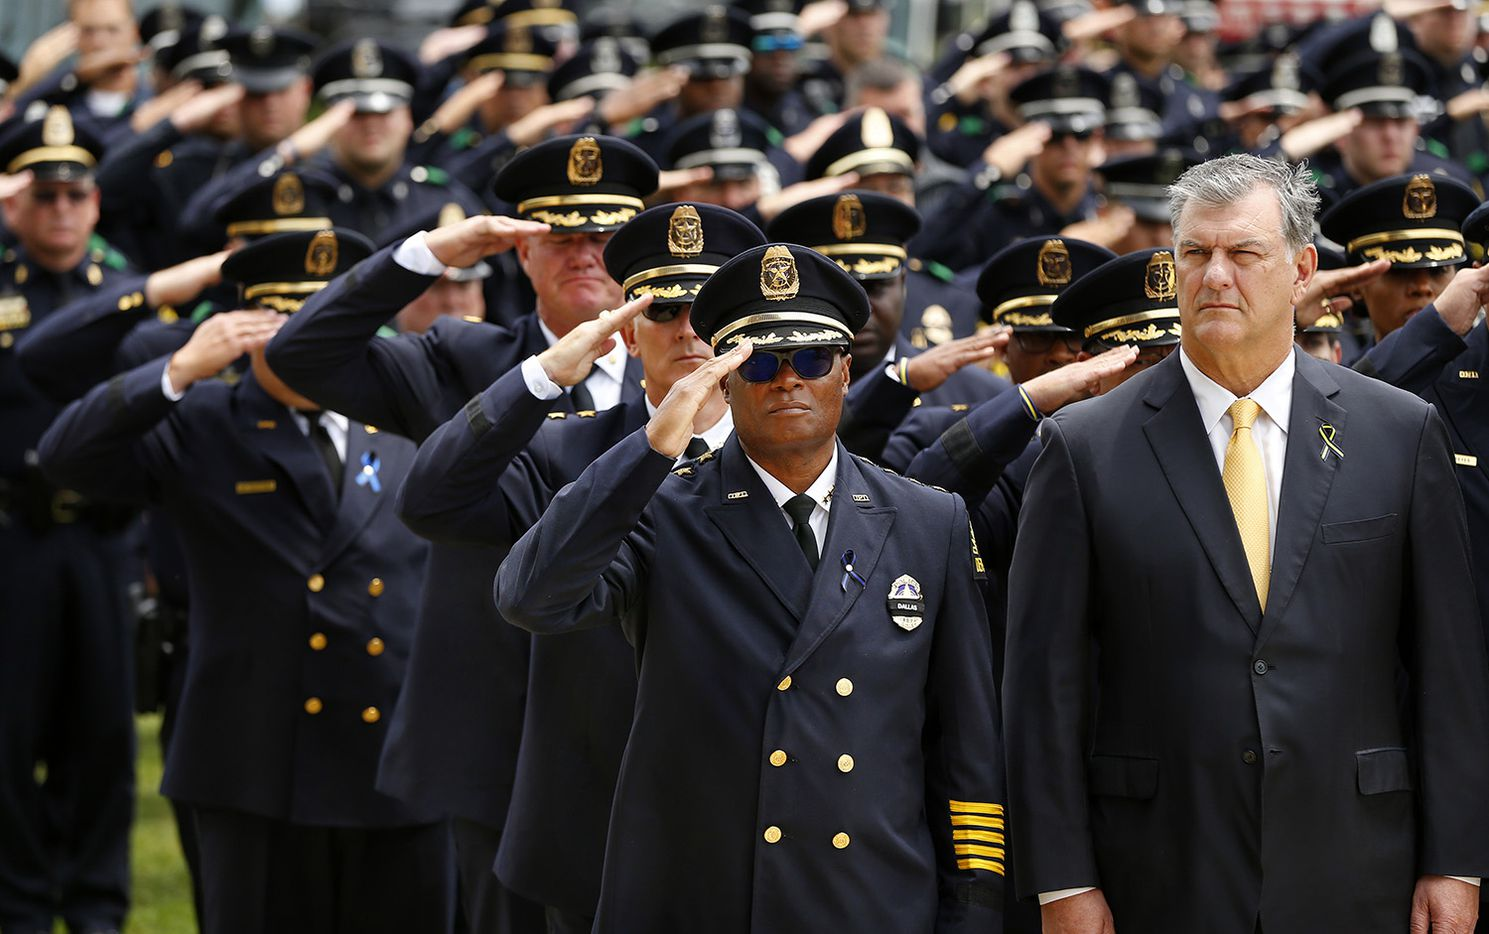 Dallas police Chief David Brown (center, left) salutes as Dallas Mayor Mike Rawlings (right) watches as the Color Guard carries slain Dallas police officer Michael Krol outside of Prestonwood Baptist Church in Plano, Texas, Friday, July 15, 2016. Krol was gunned down in an ambush attack in downtown Dallas a week ago. Four Dallas police officers and one DART officer were killed and several survived.